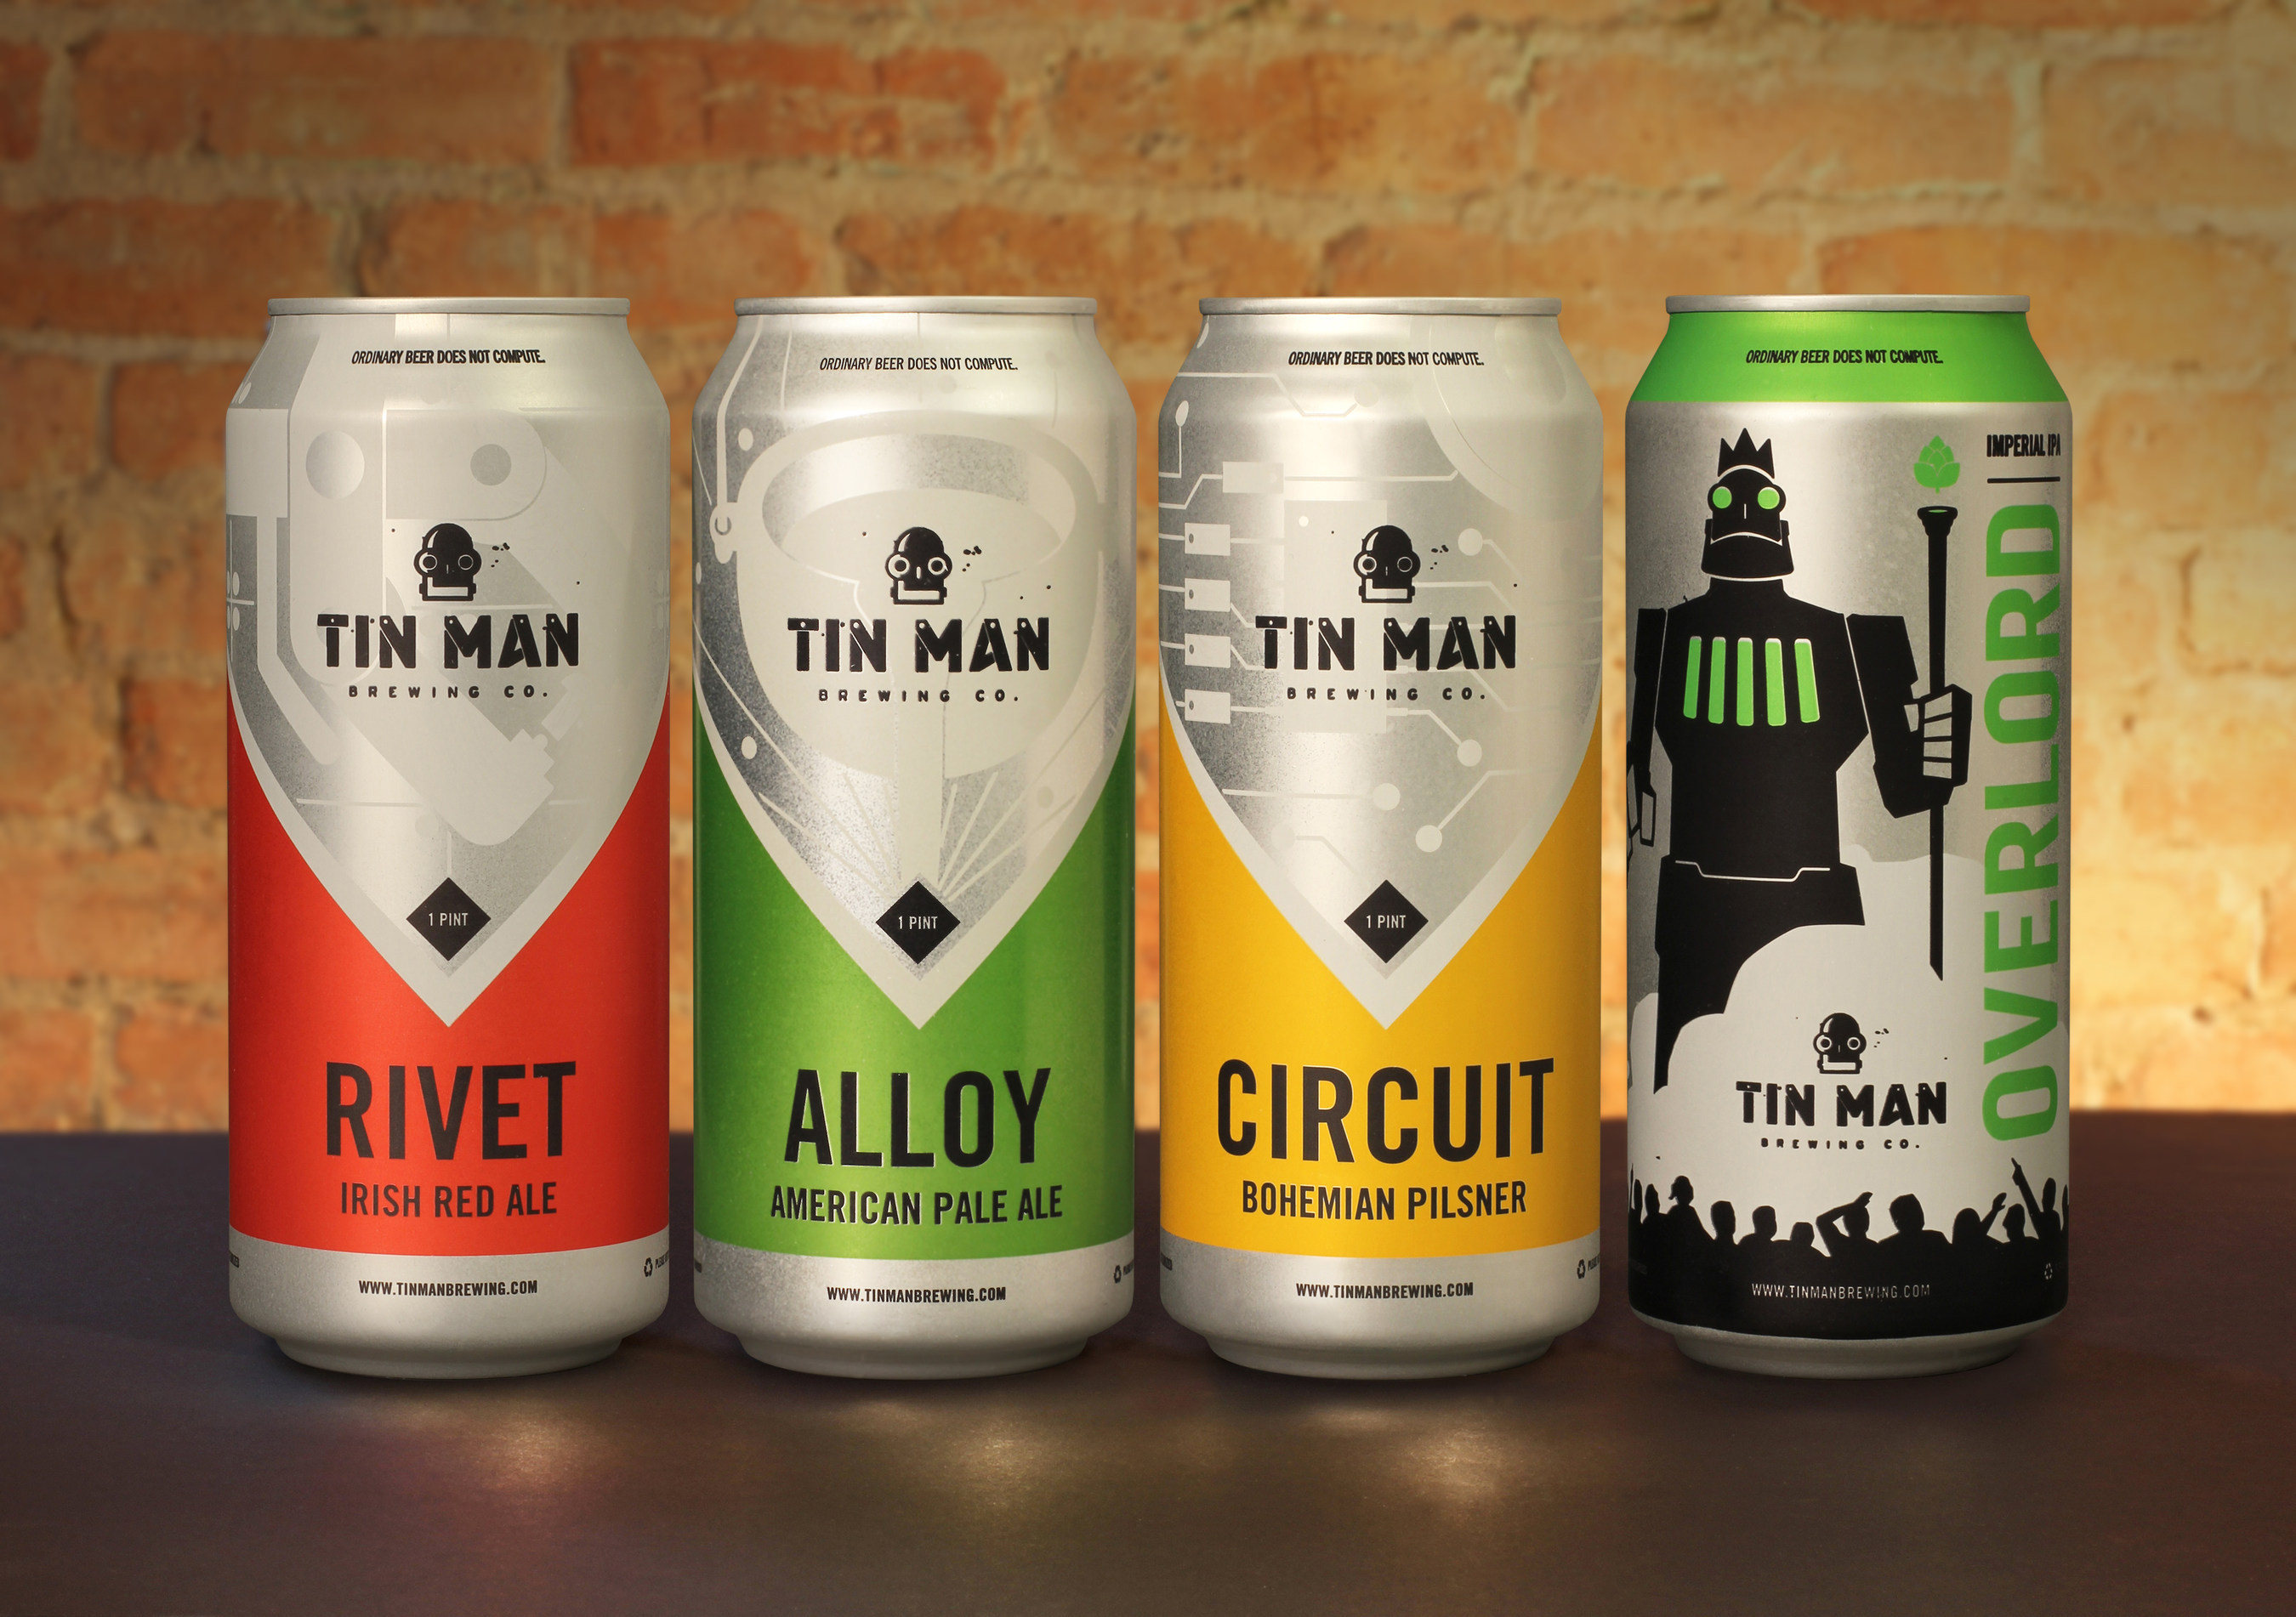 Tin Man Brewing Offers Four Core Beers In Rexam Cans